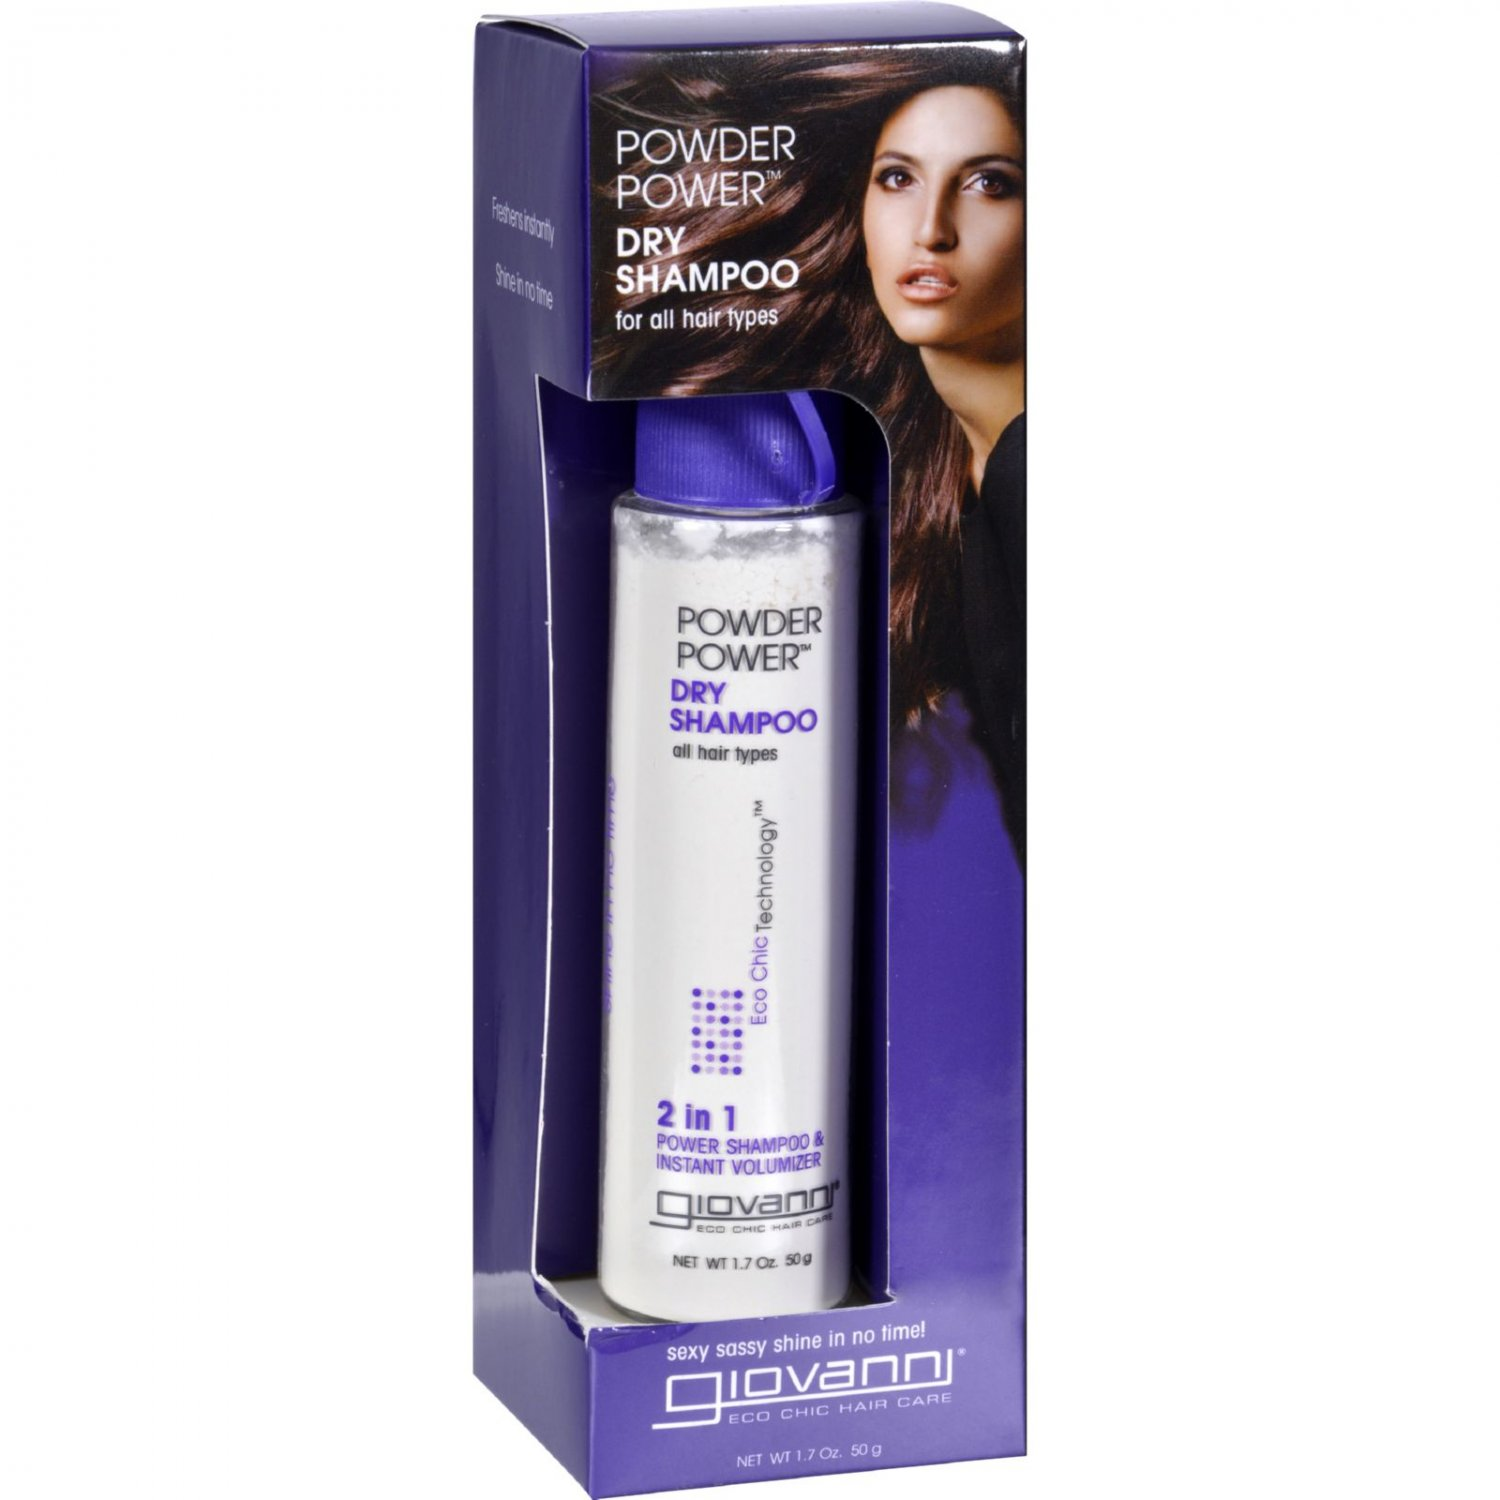 Giovanni Hair Care Products Shampoo - Powder Power Dry - 50 Grams